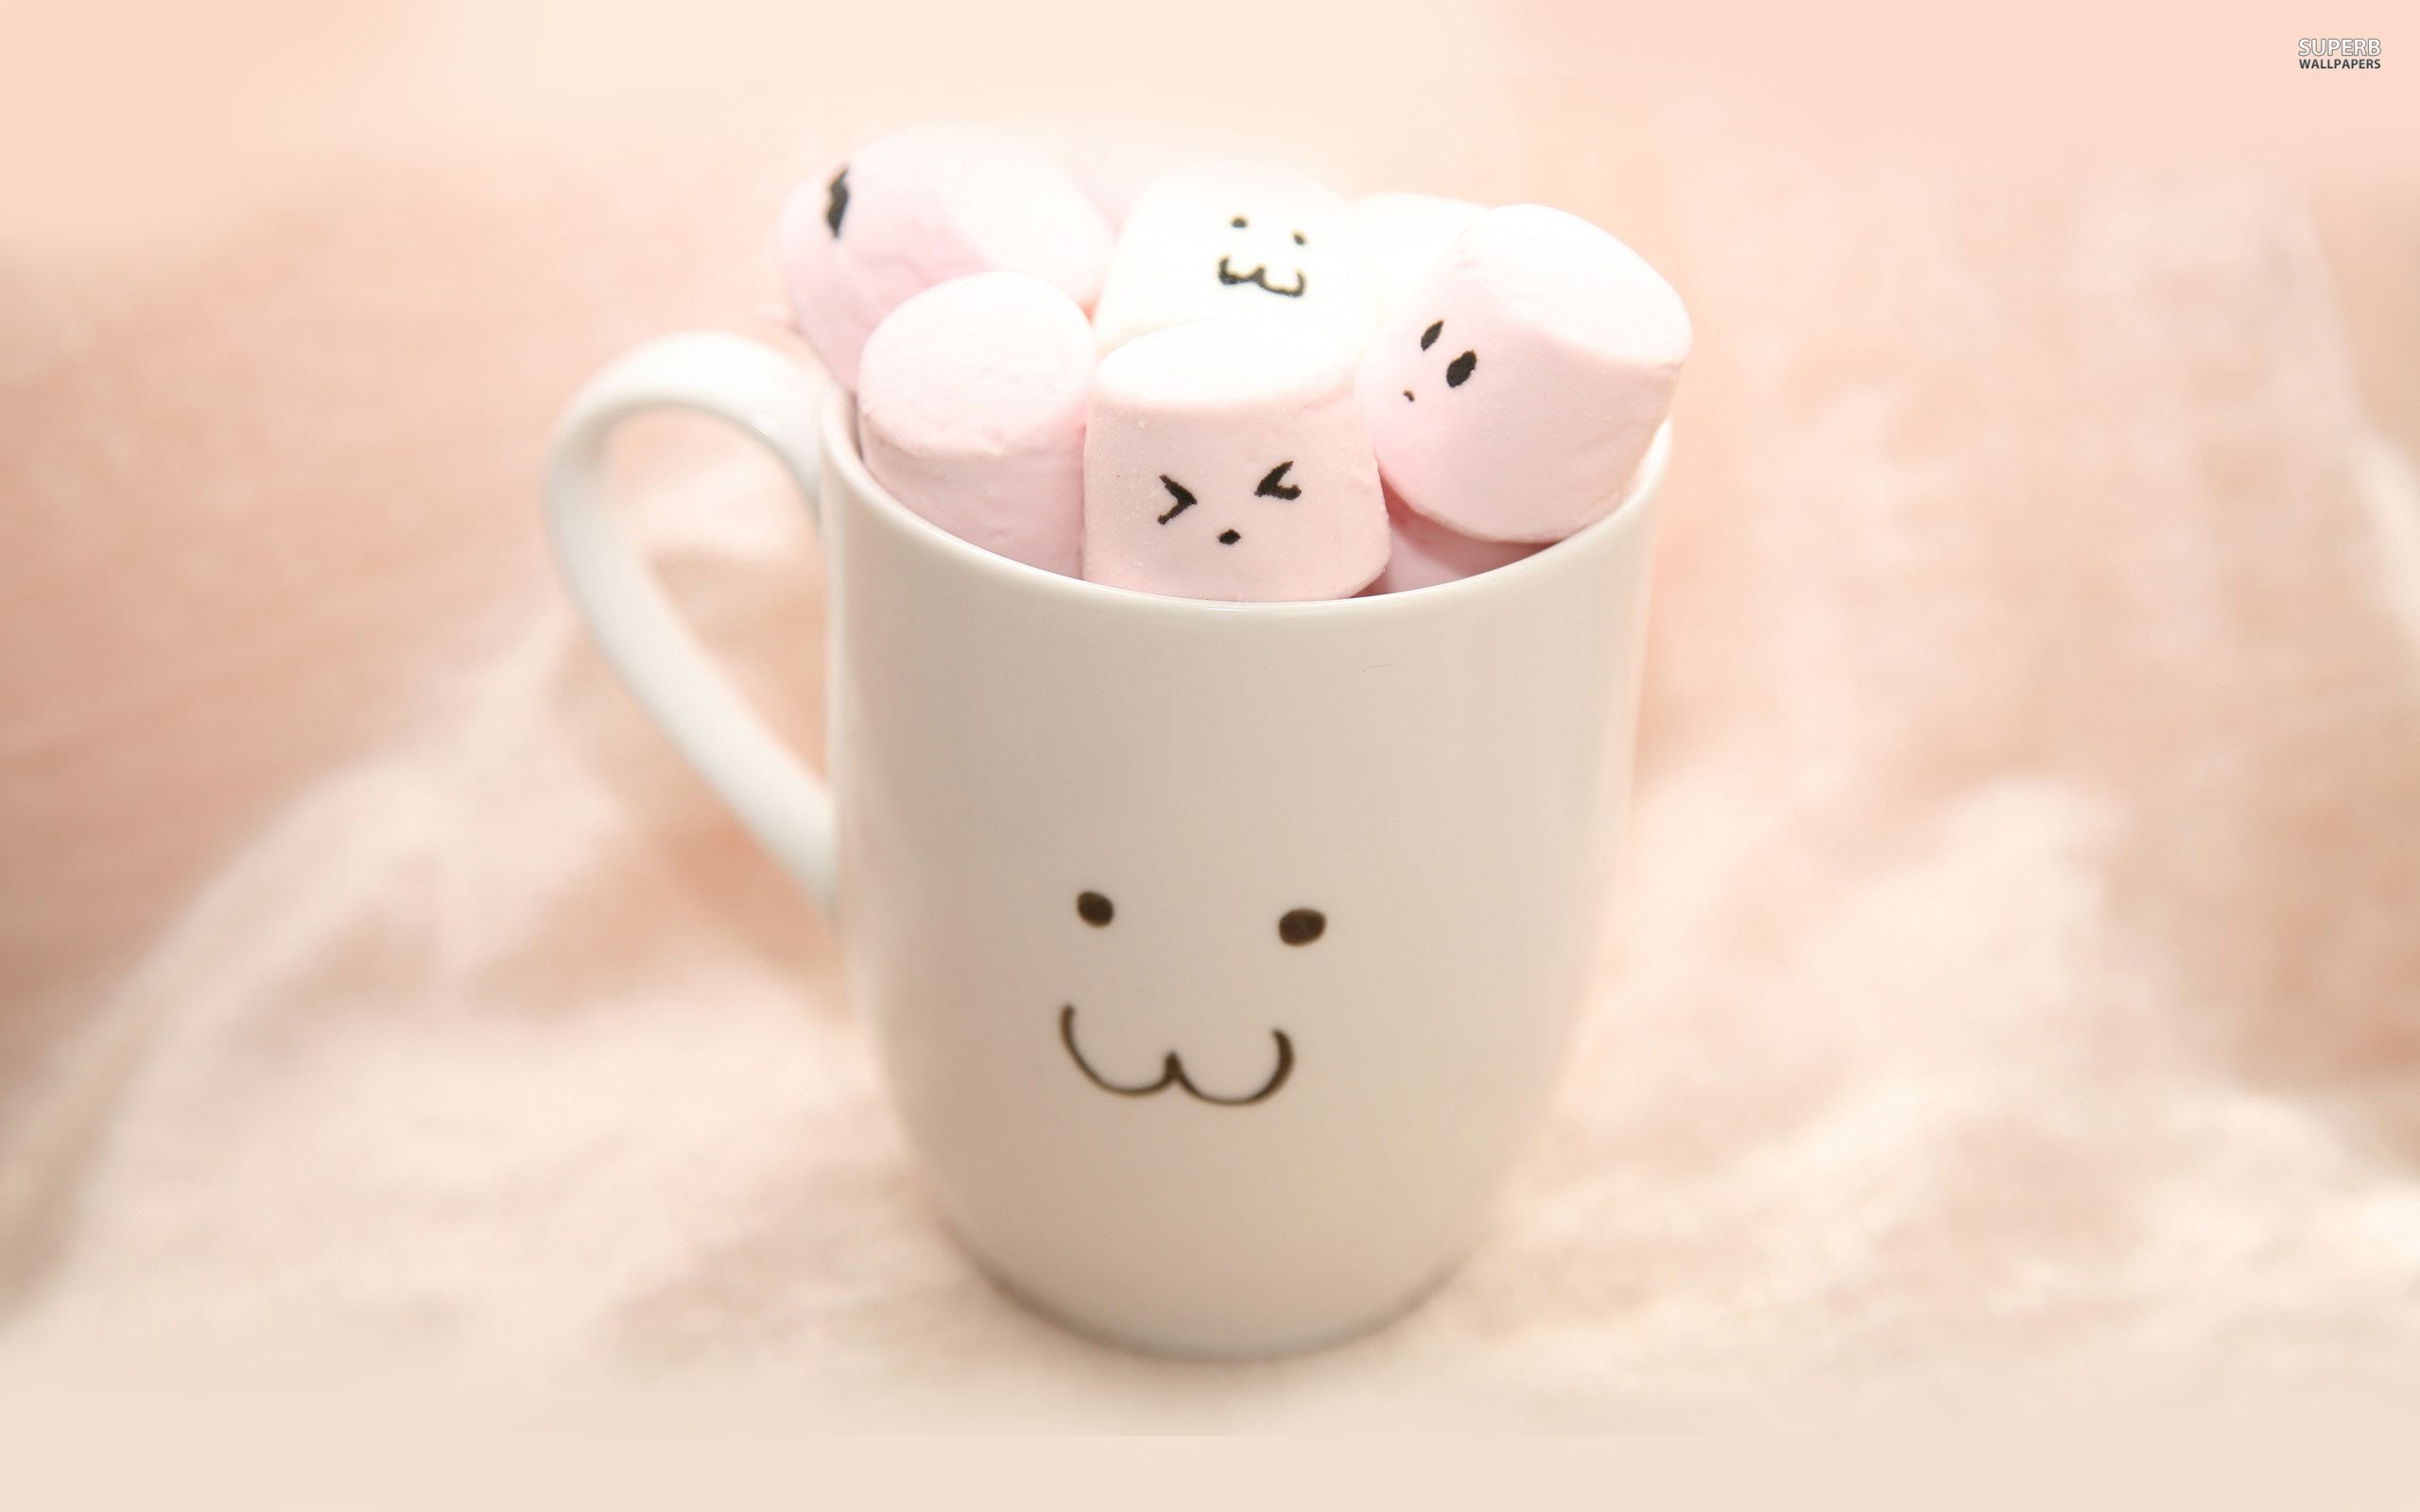 Cute Marshmallow Wallpaper Hd Cute Marshmallow Wallpapers 61 Images